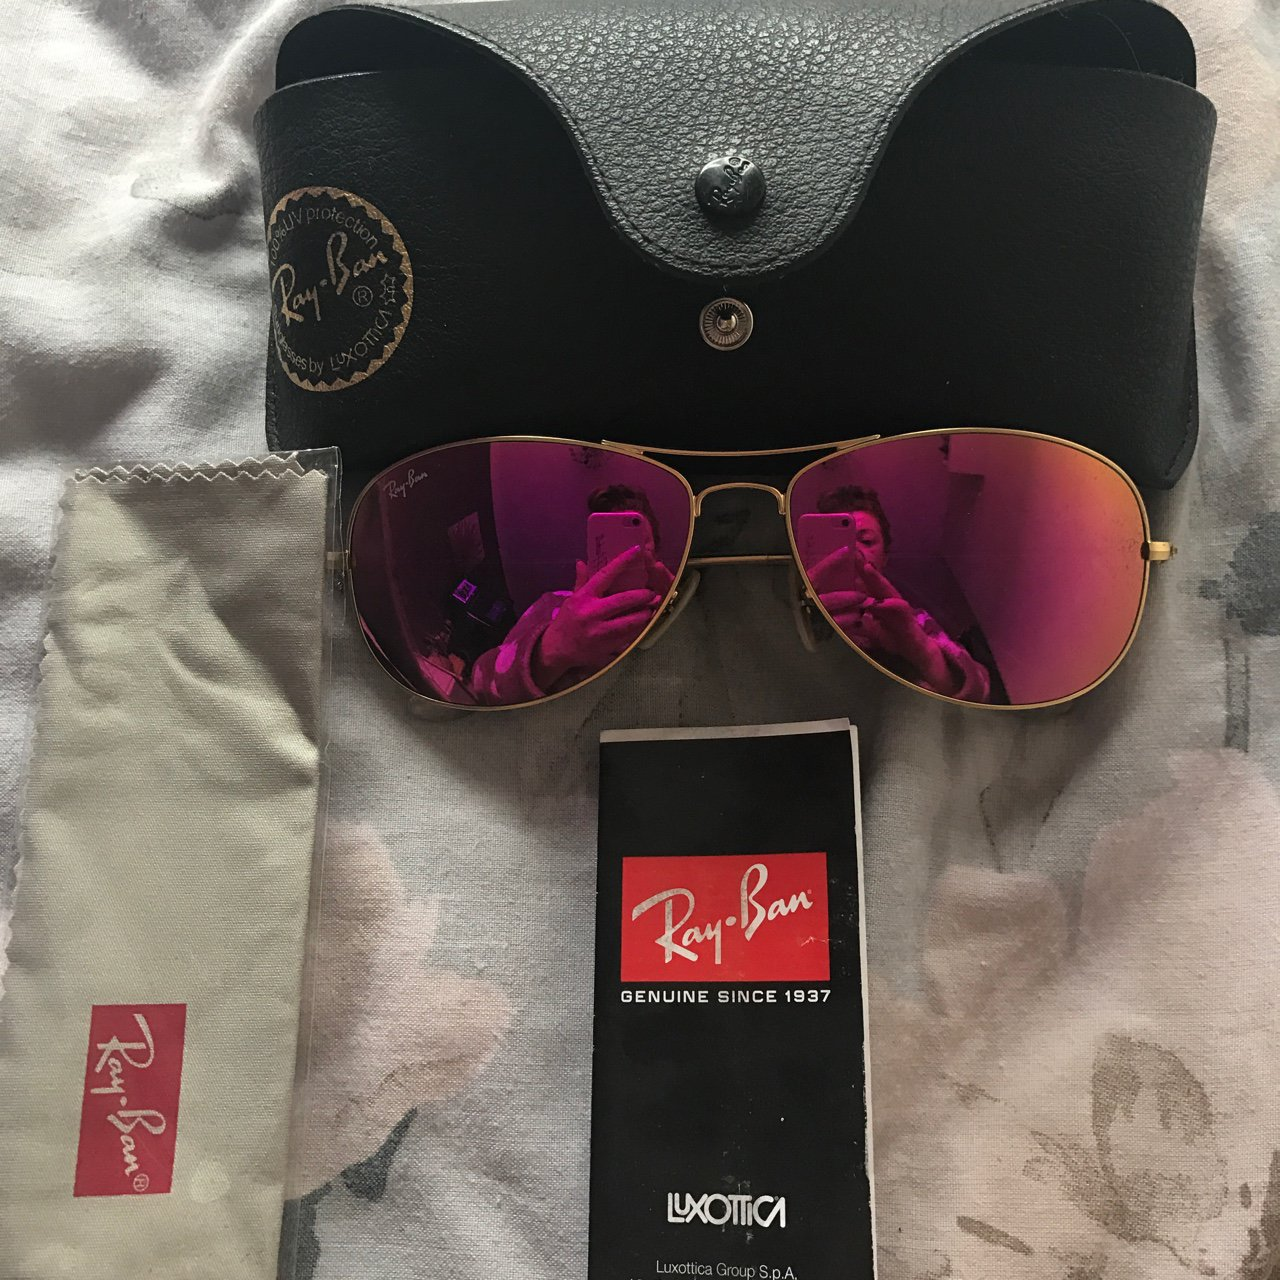 8d6737b860 Ray ban pink aviator sunglasses. Worn once. RRP £140 from - Depop